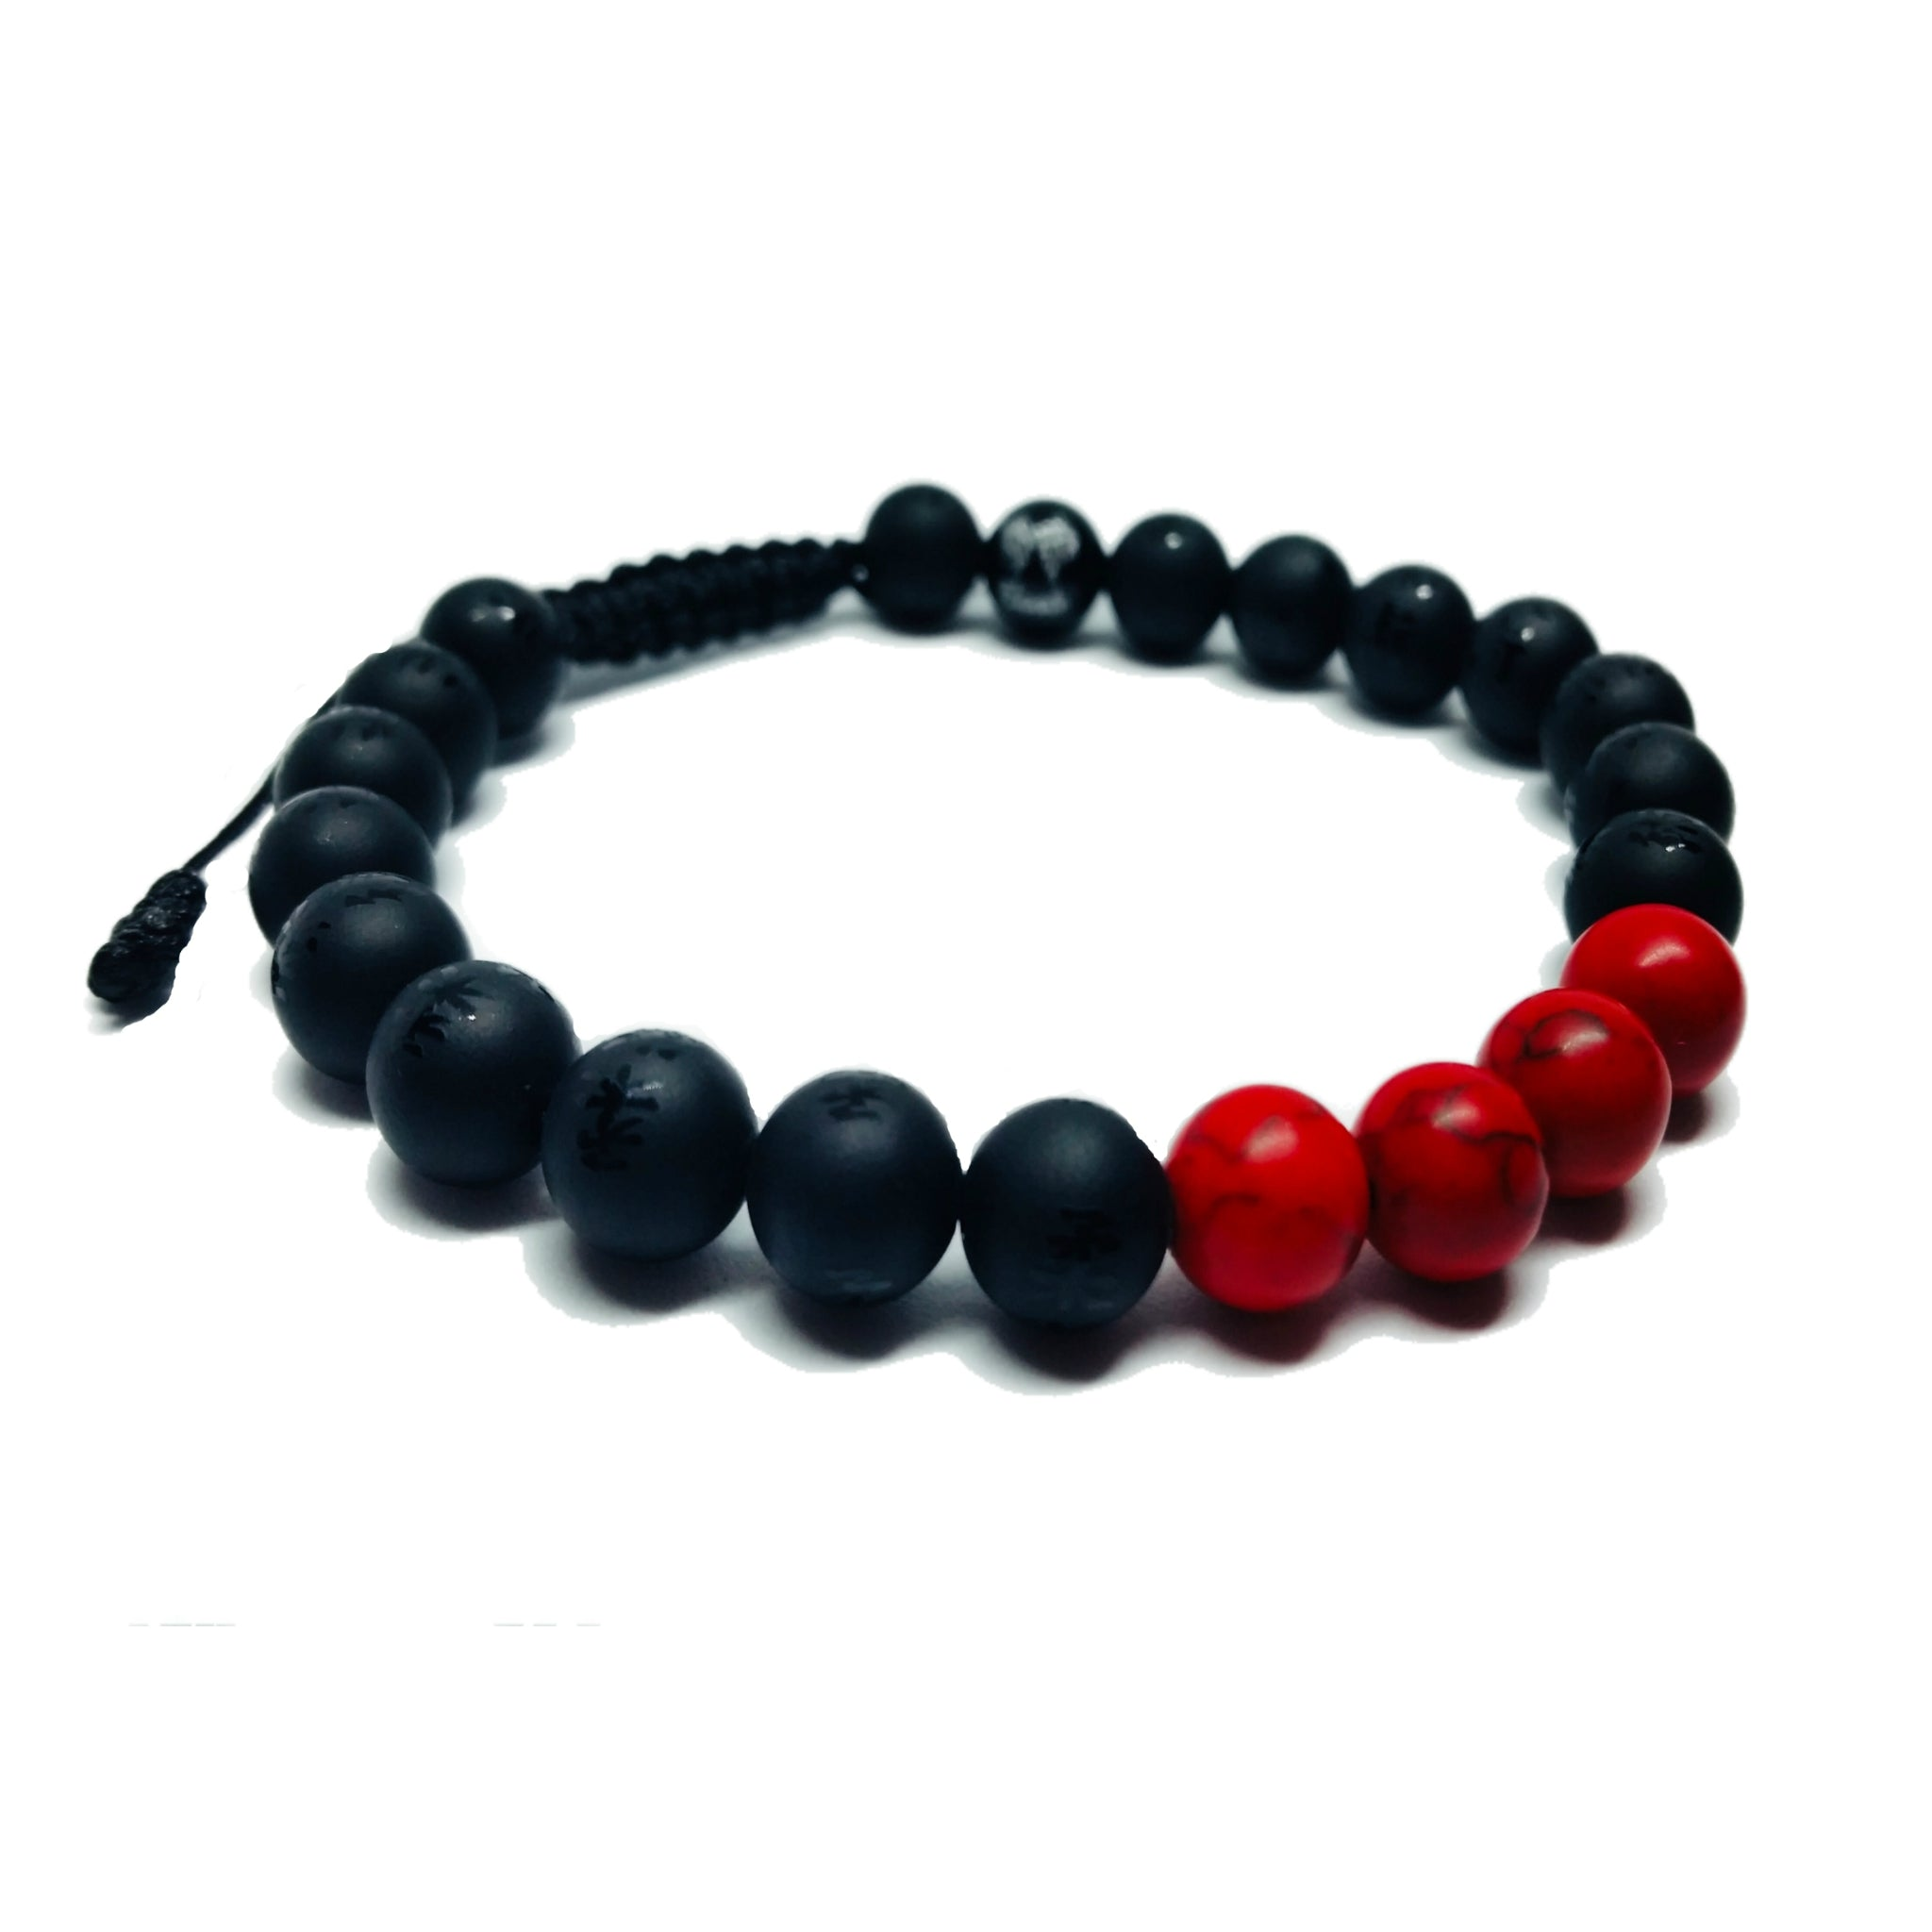 BLACK BELT - Ranked Stone Jiu-Jitsu Bracelet